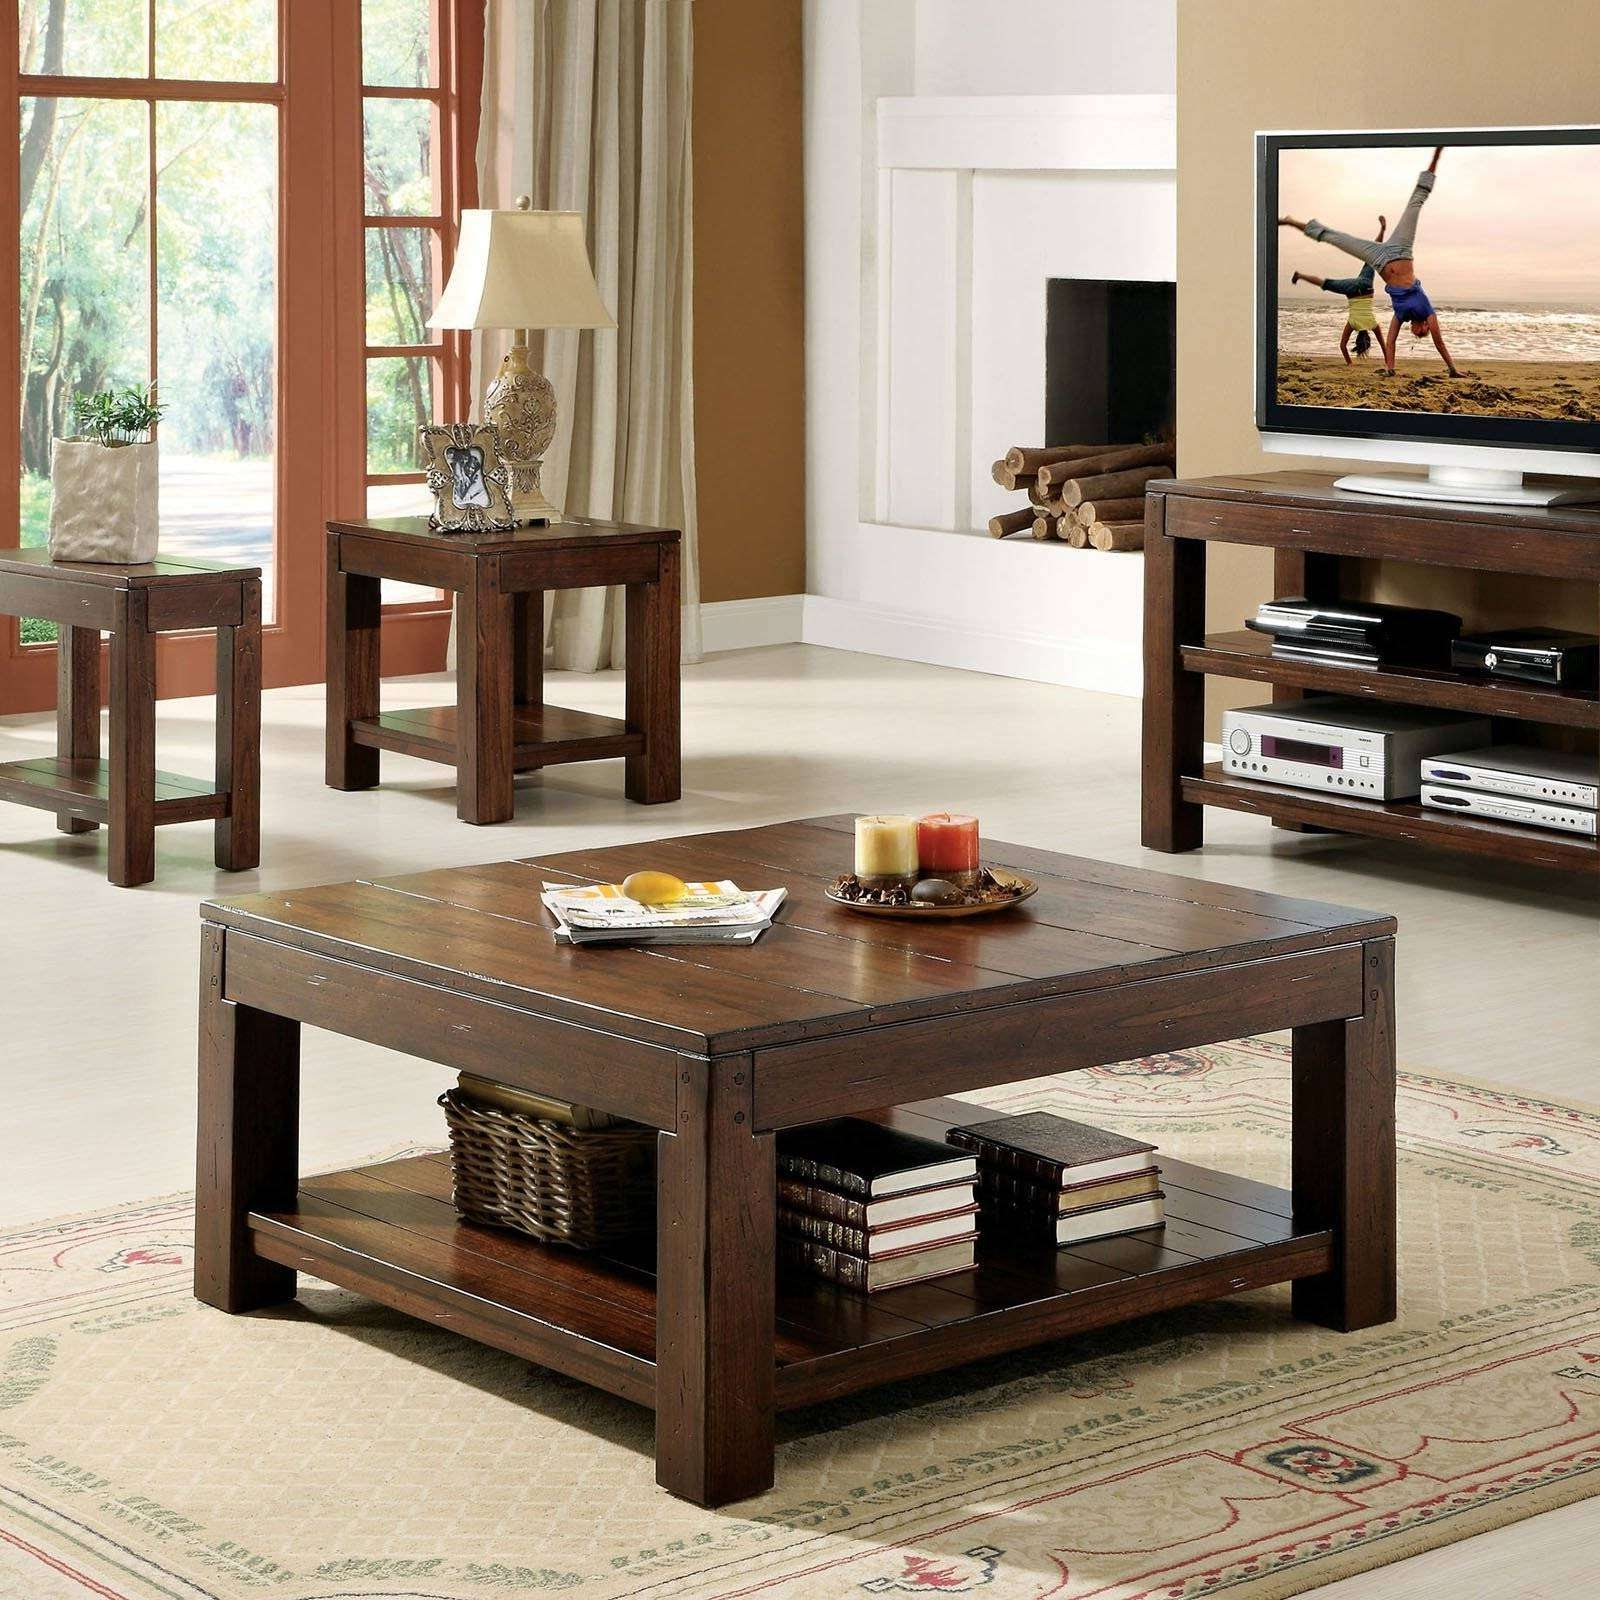 Trendy Tv Unit And Coffee Table Sets With Coffee Tables : Sets With Matching Tv Stand Piece Living Room (View 20 of 20)